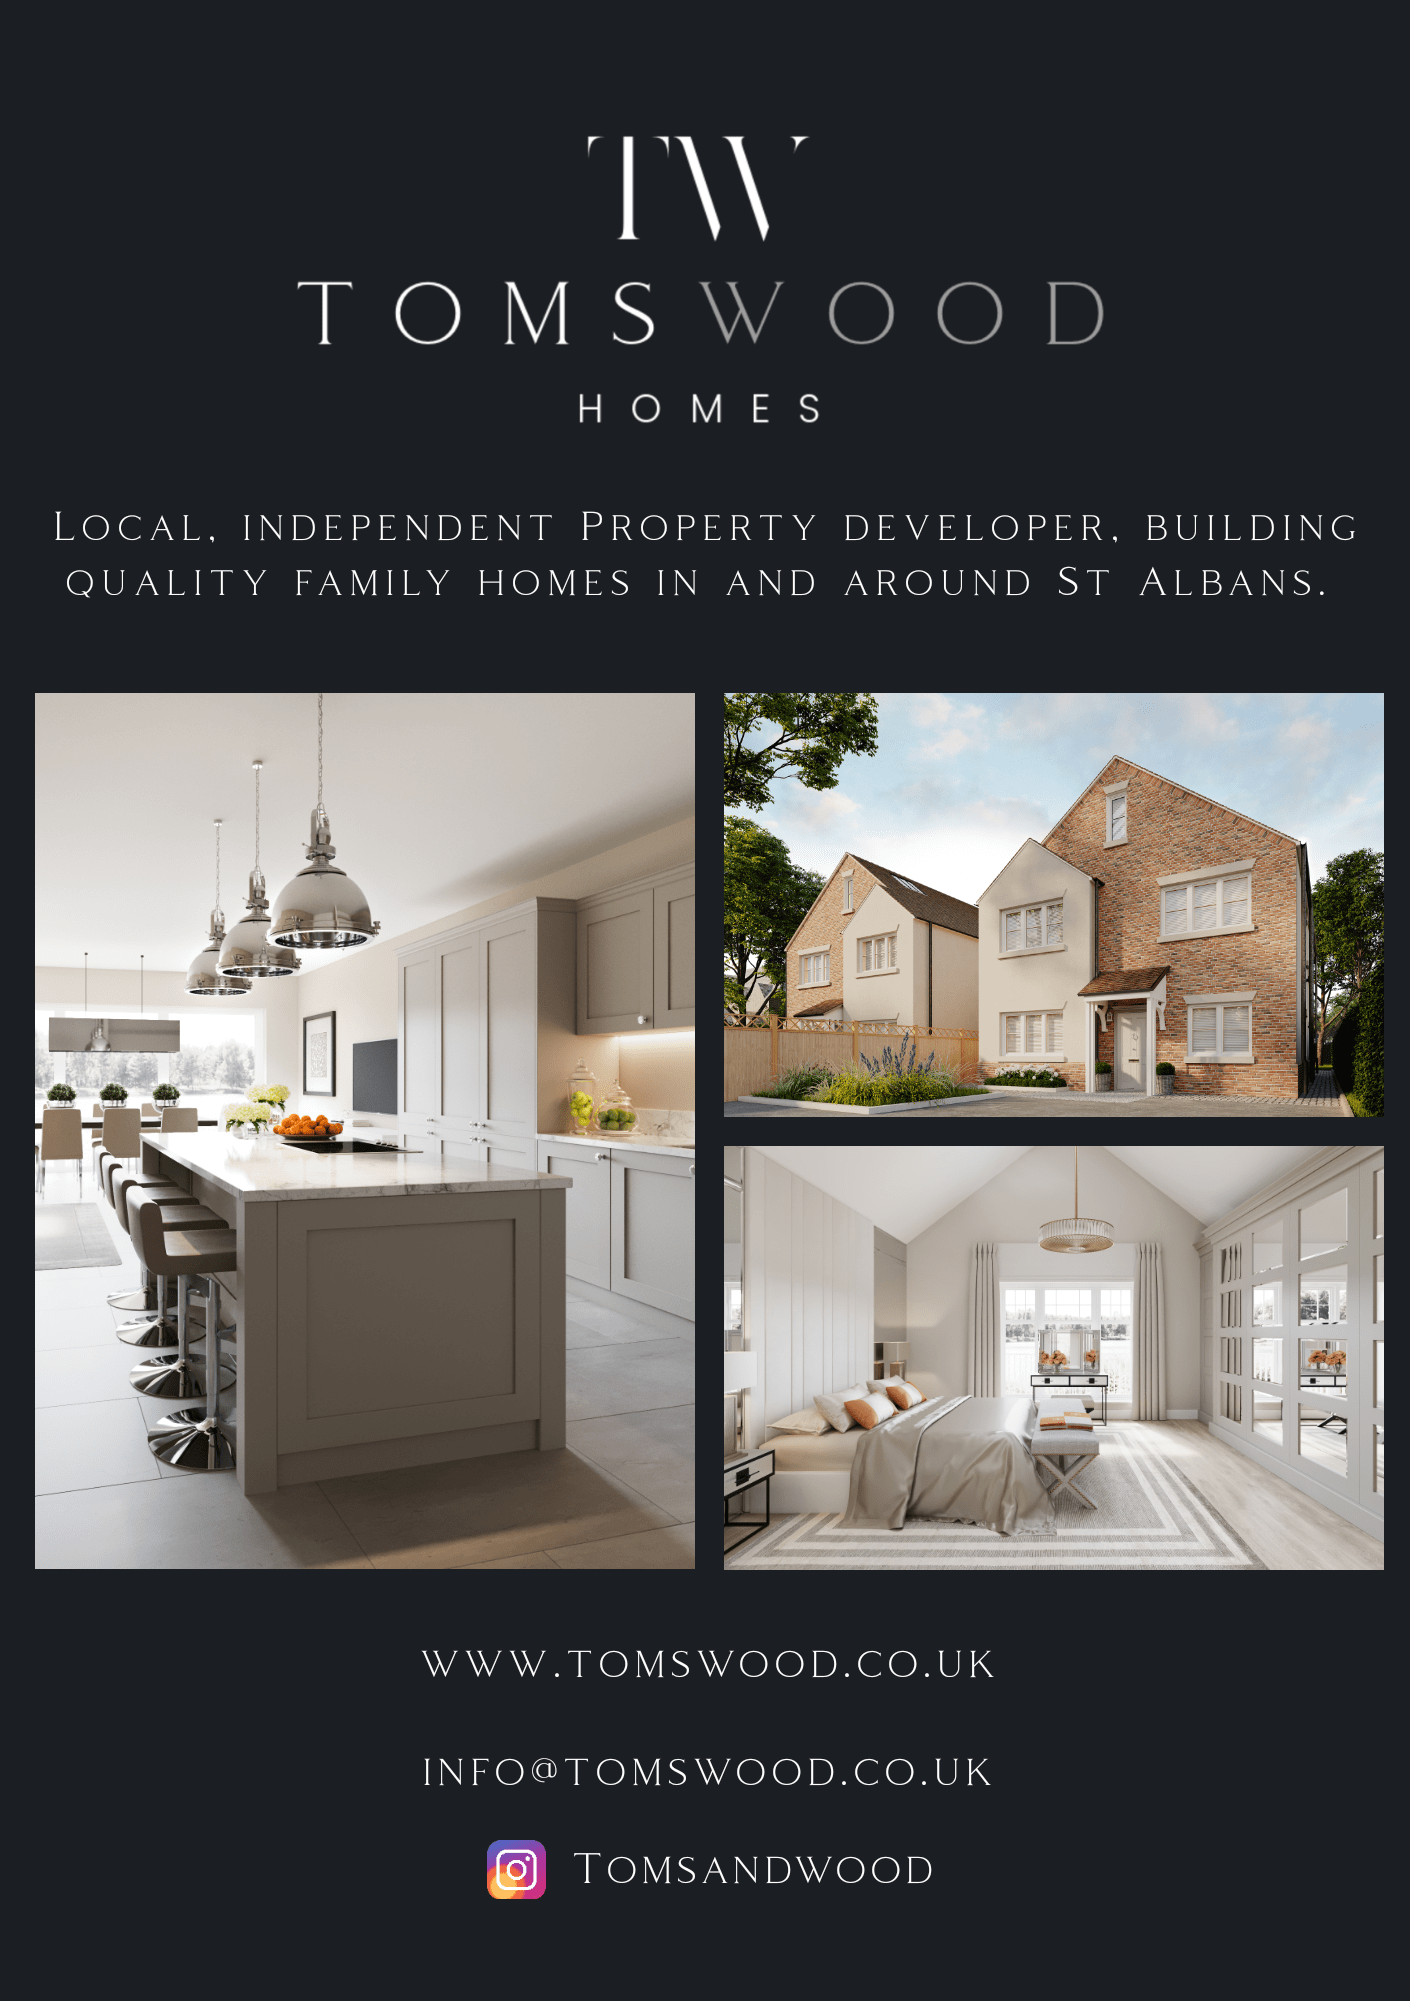 TomsWood Homes